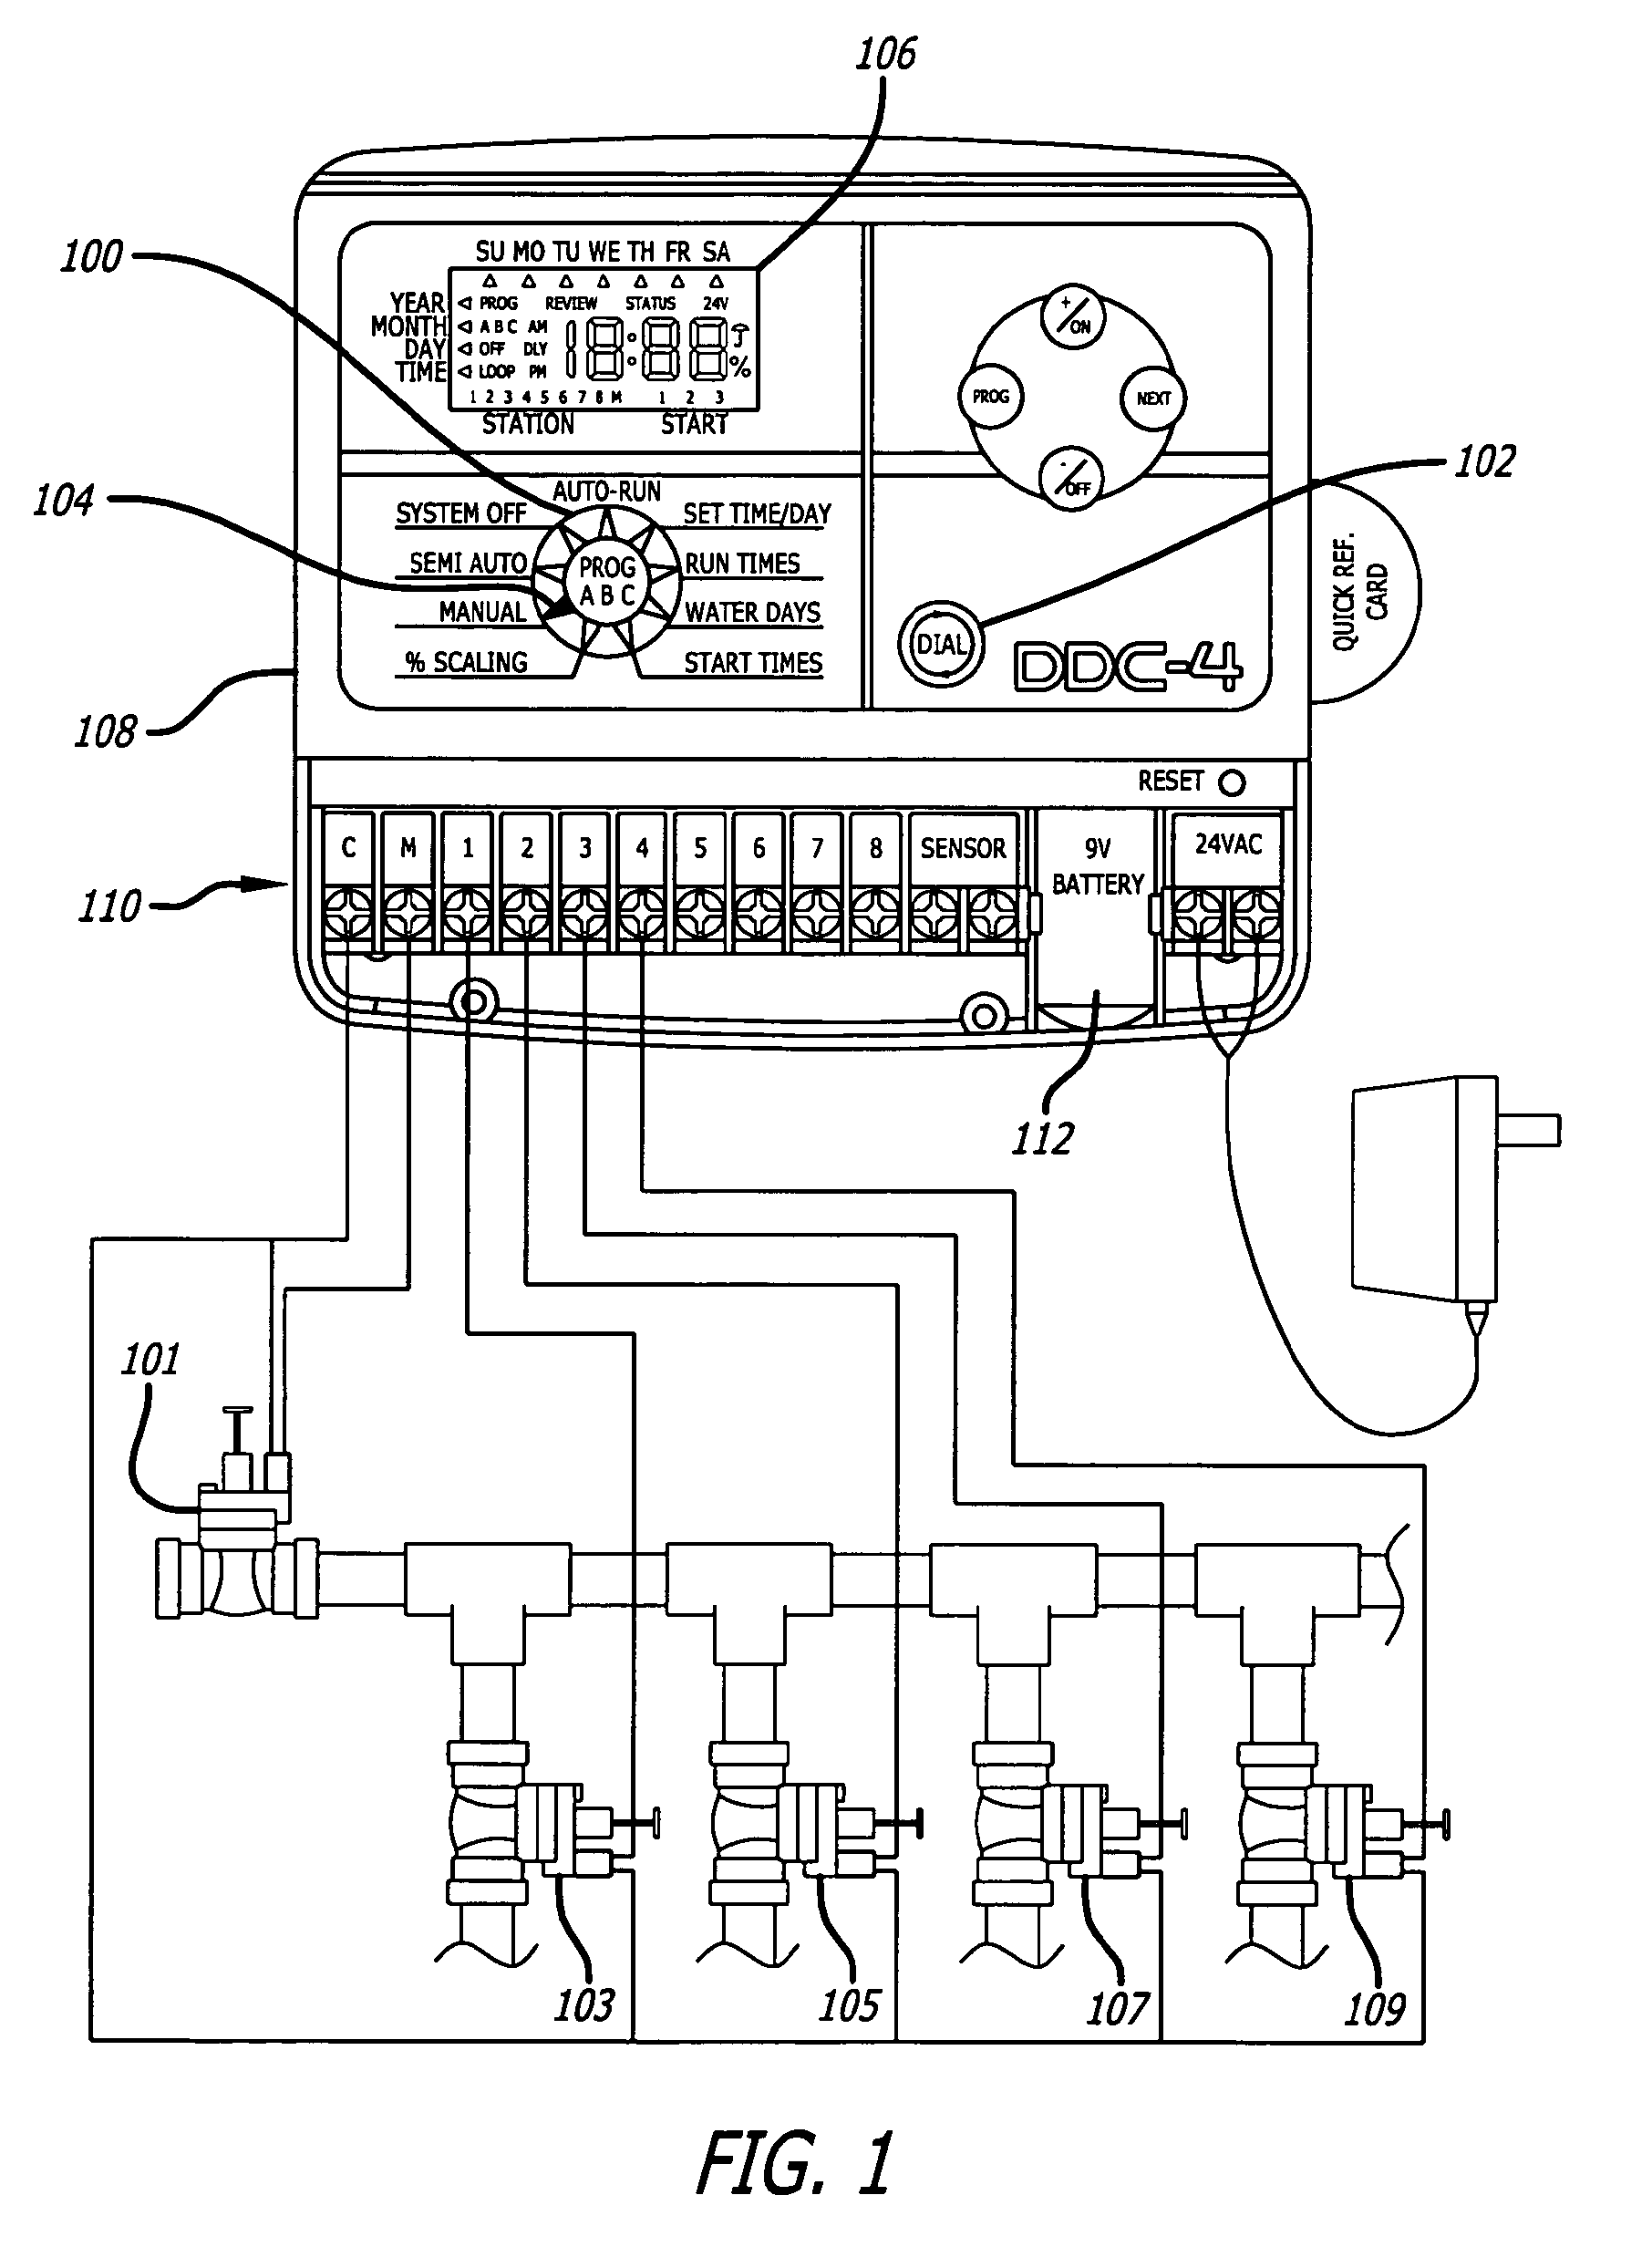 US07761189 20100720 D00001 patent us7761189 virtual dial irrigation controller google patents wiring diagram toro sprinkler control at crackthecode.co